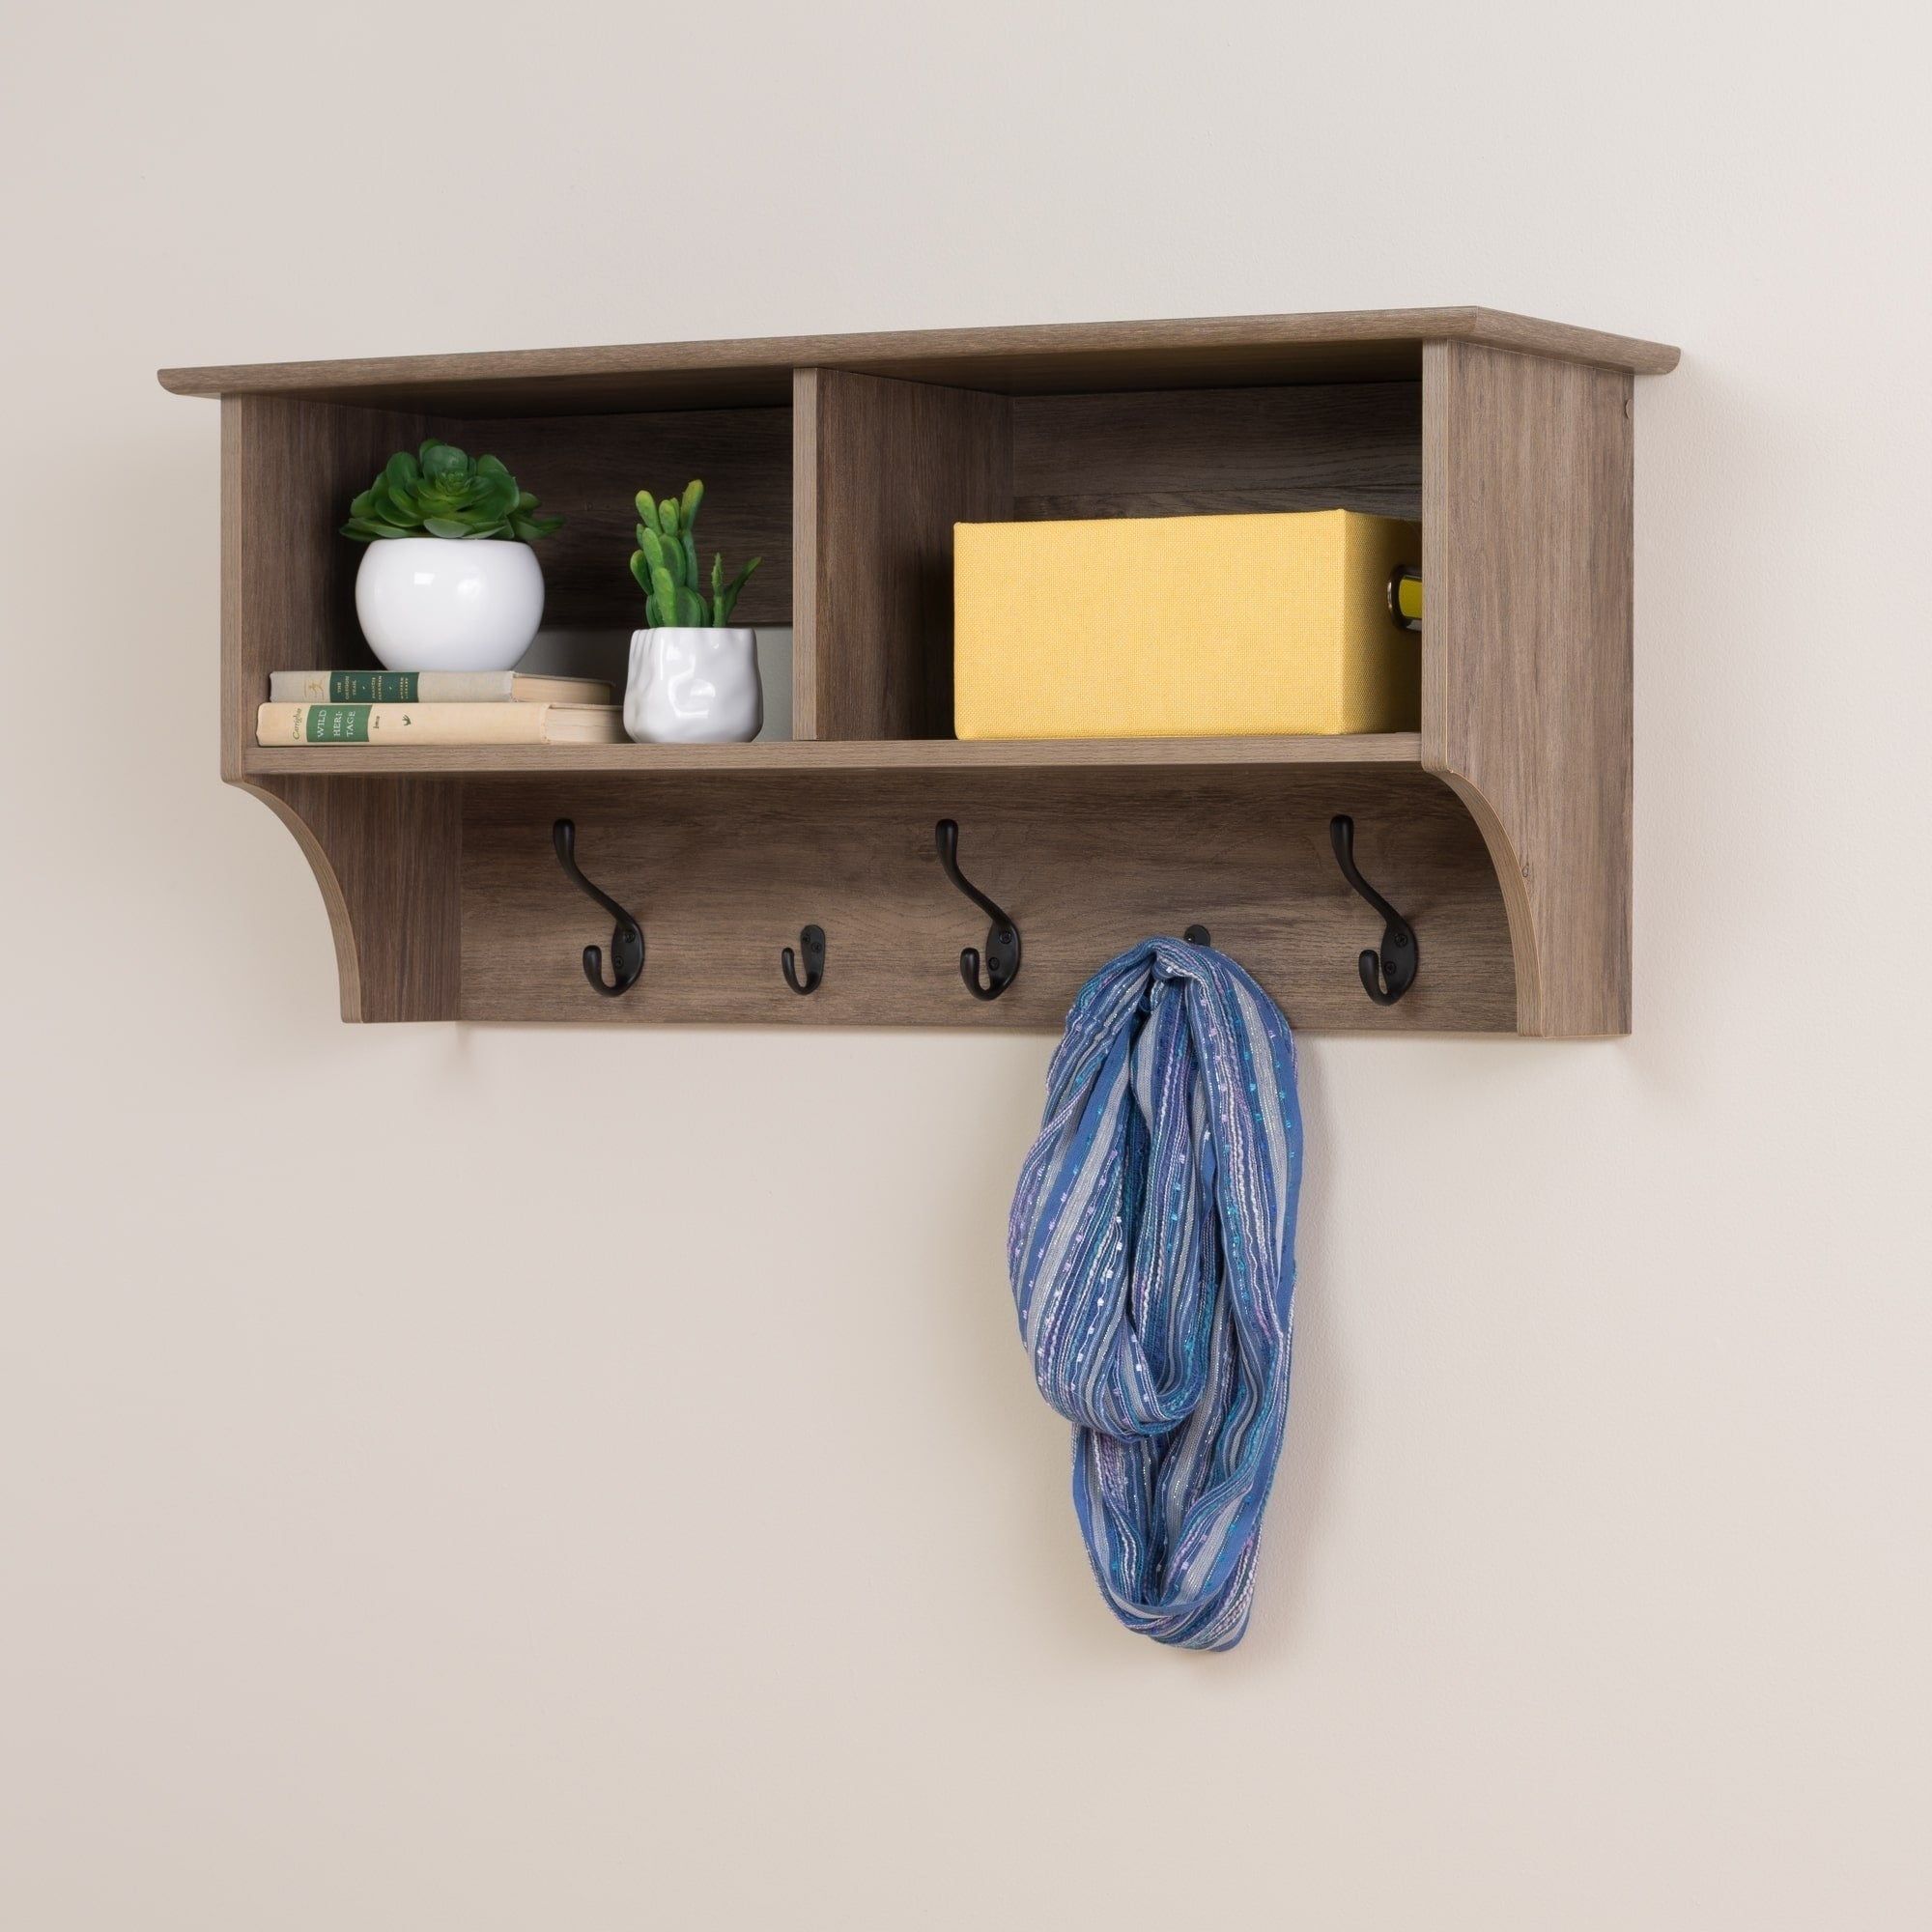 prepac drifted grey wood inch wide floating entryway shelf with bench espresso moveable kitchen island secret gun cabinet garage wall rack system lane chairs book ledge slotted